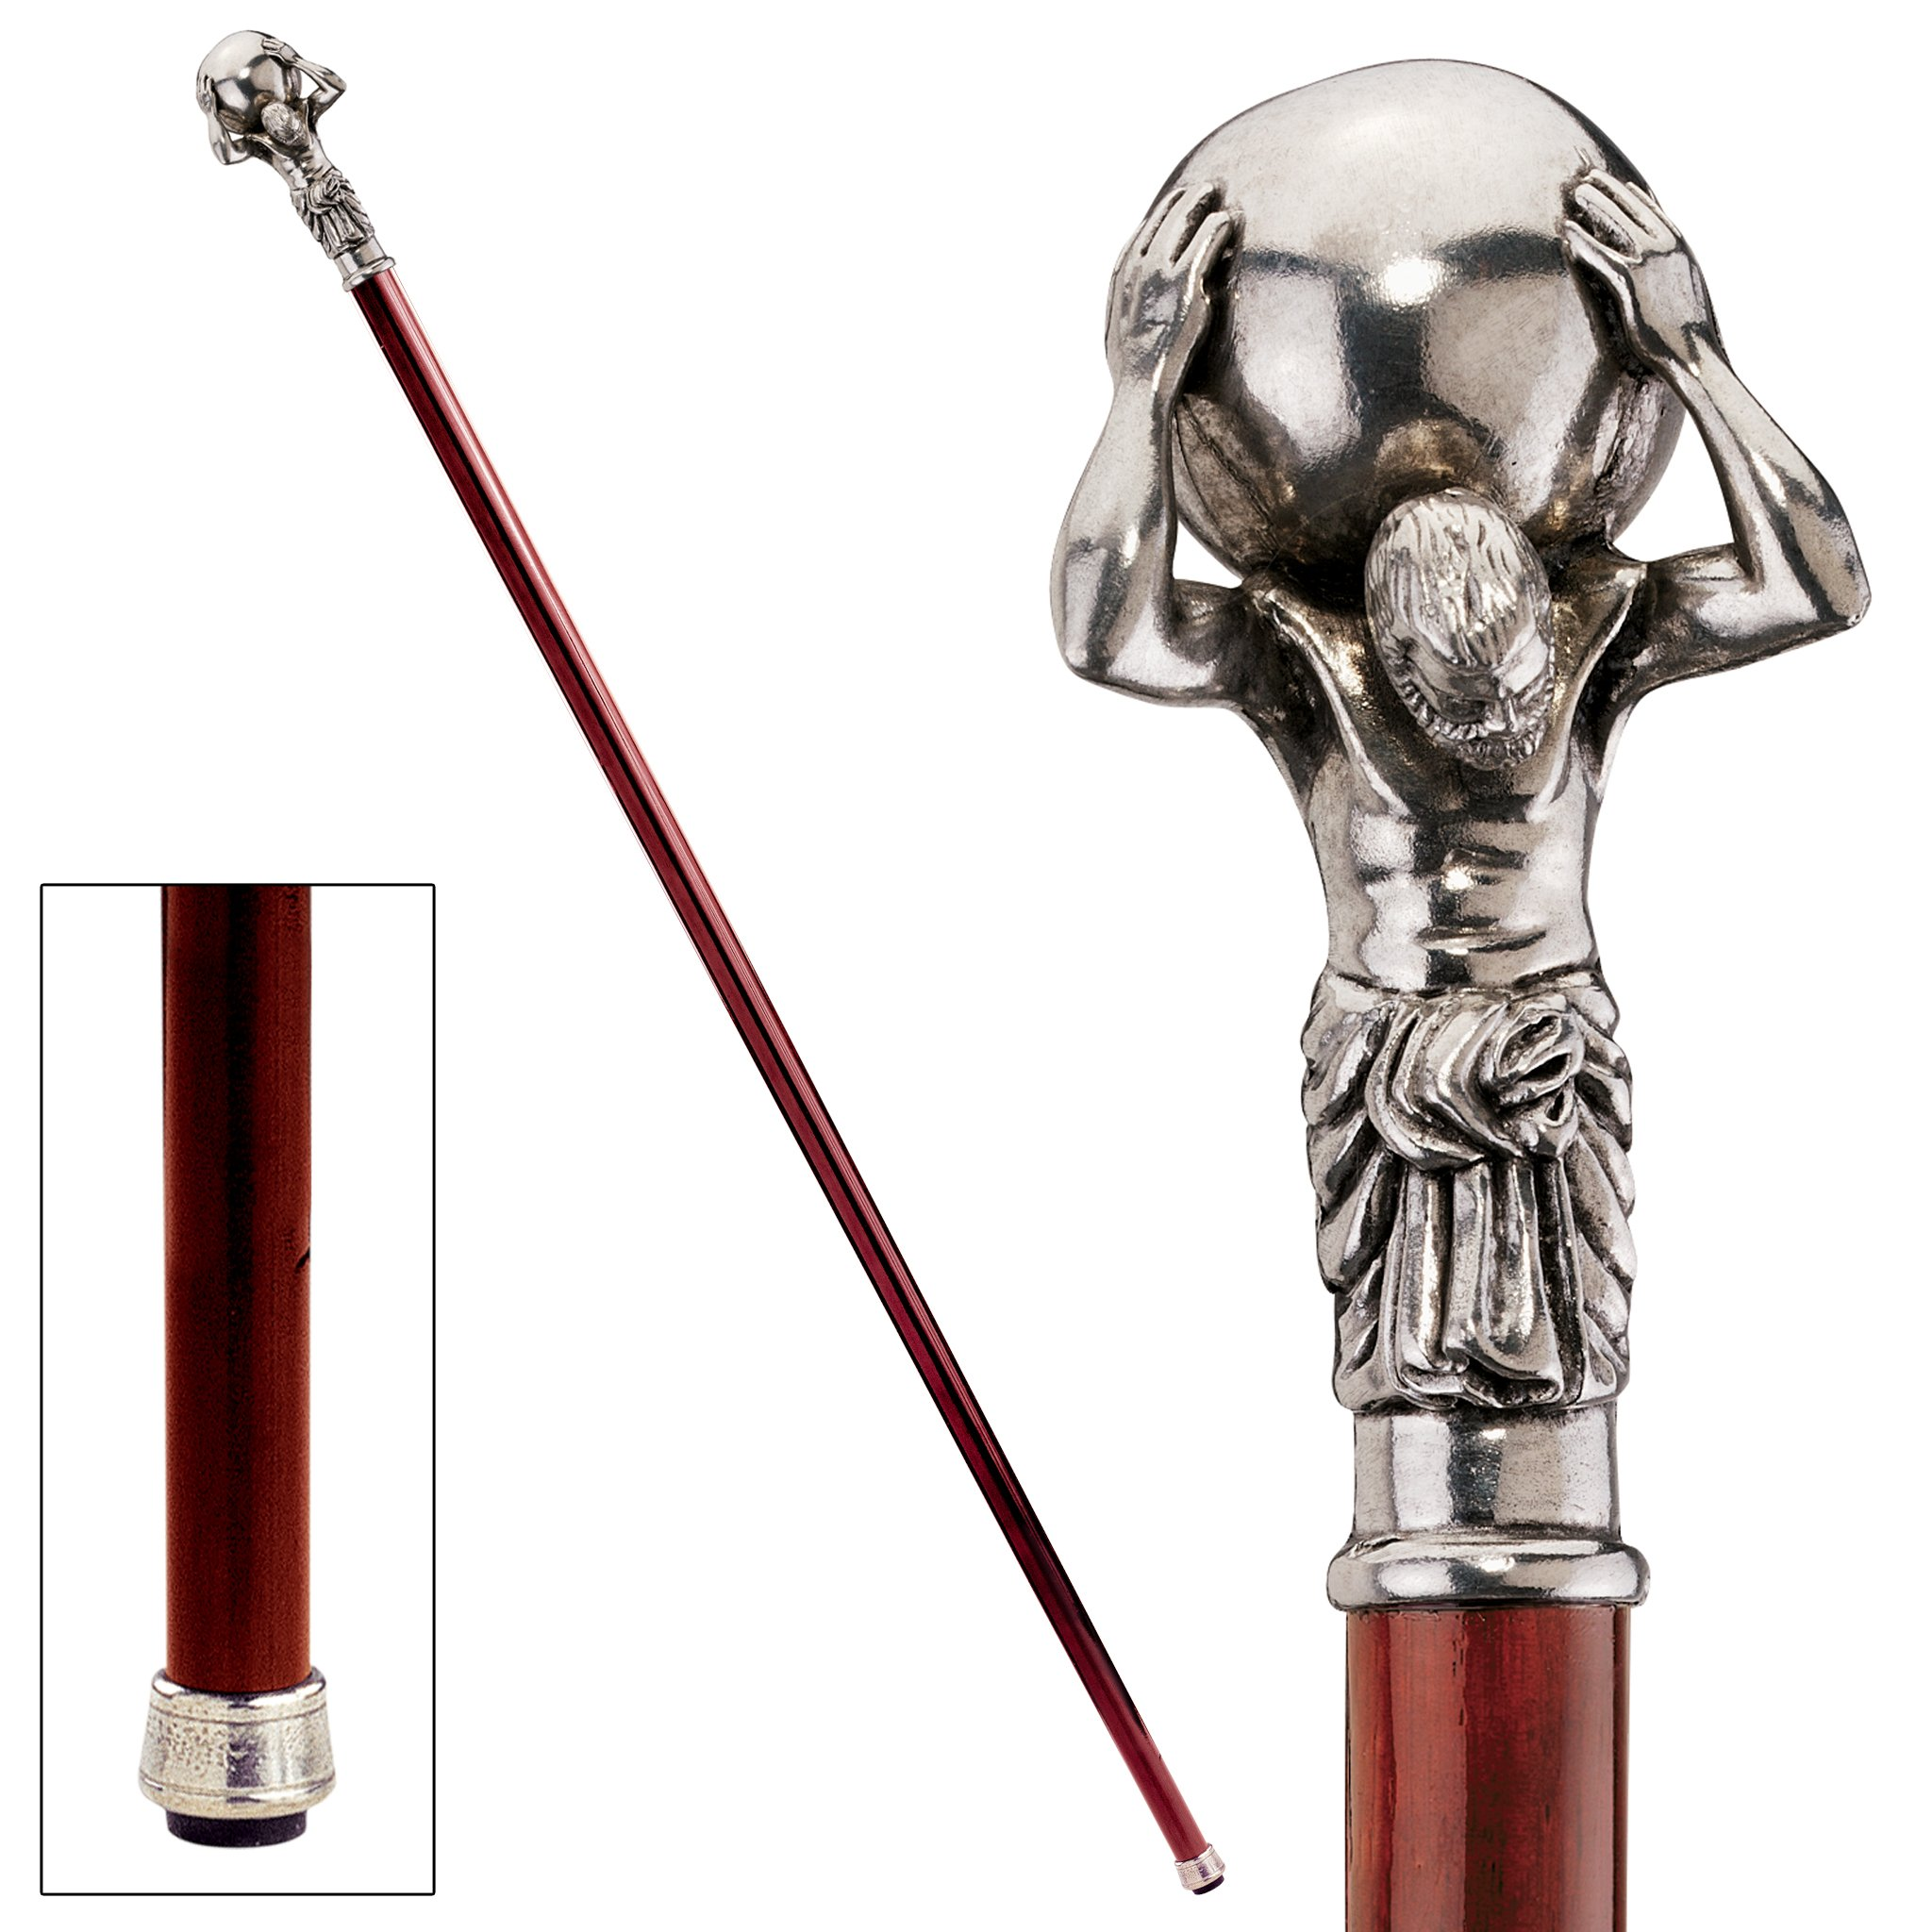 Design Toscano Atlas Walking Stick, 36 Inch, Pewter Handle and Hardwood Cane, Silver by Design Toscano (Image #2)